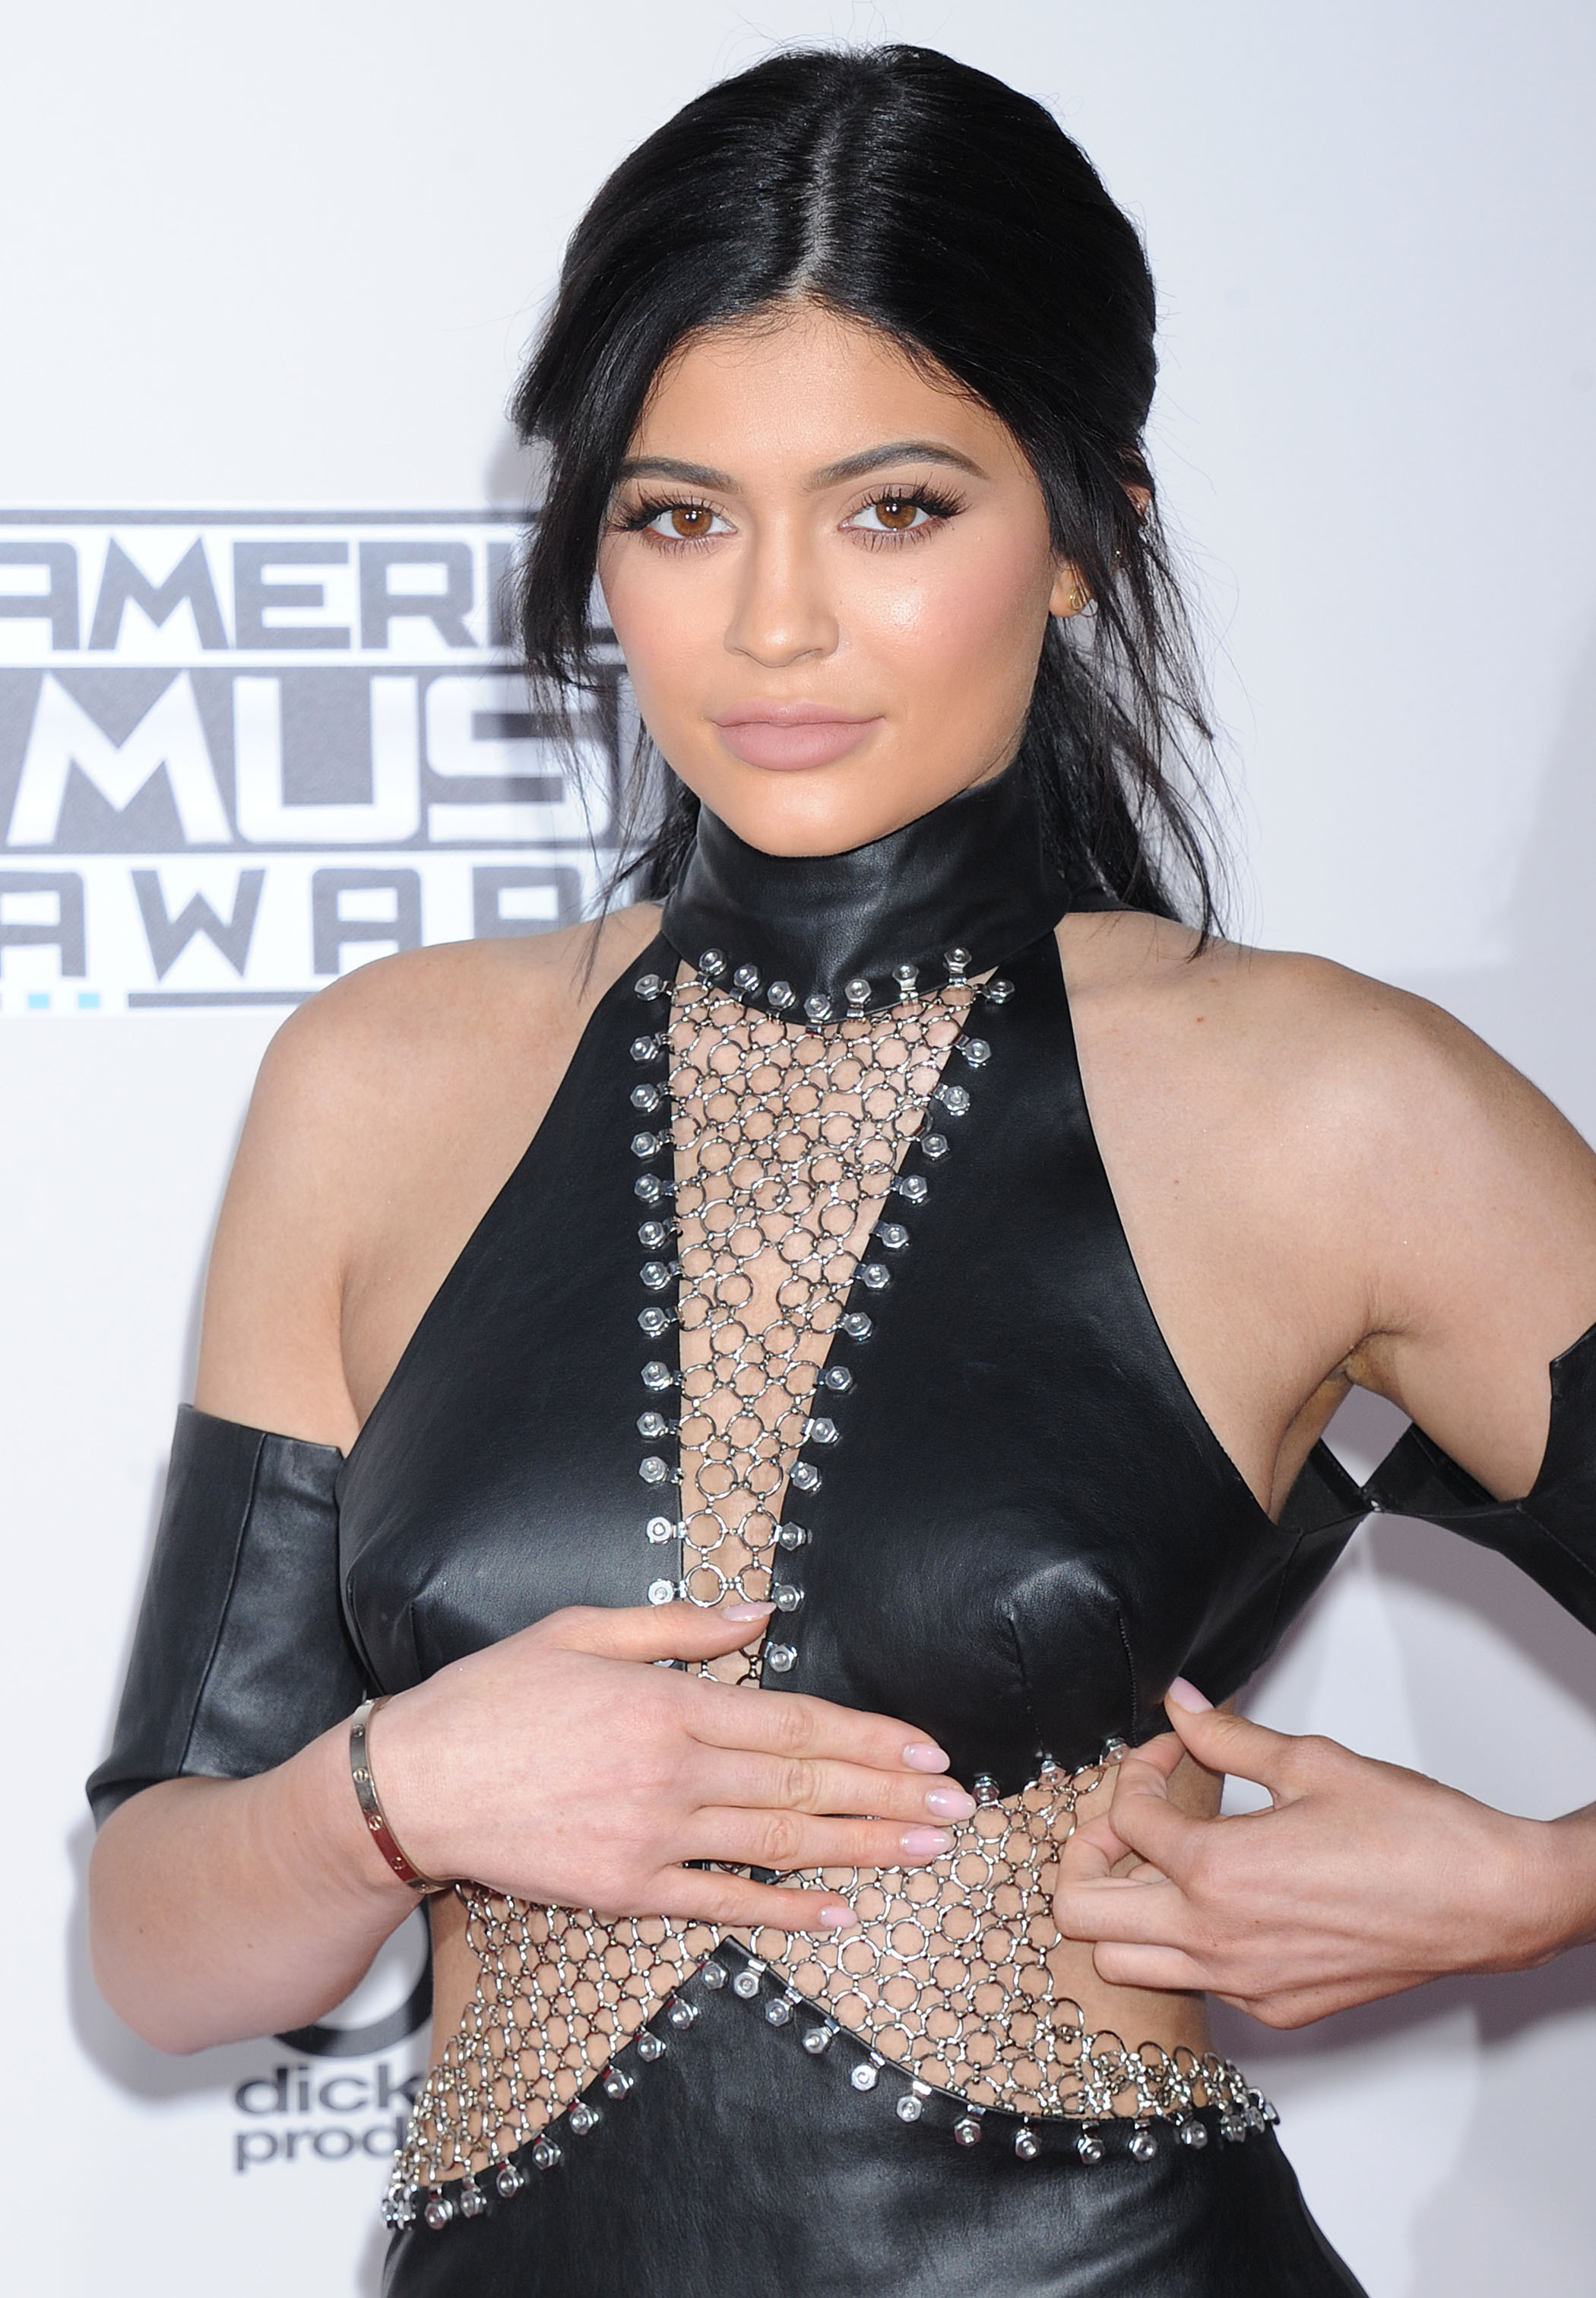 Kylie_Jenner_American_Music_Awards_2015_03.JPG